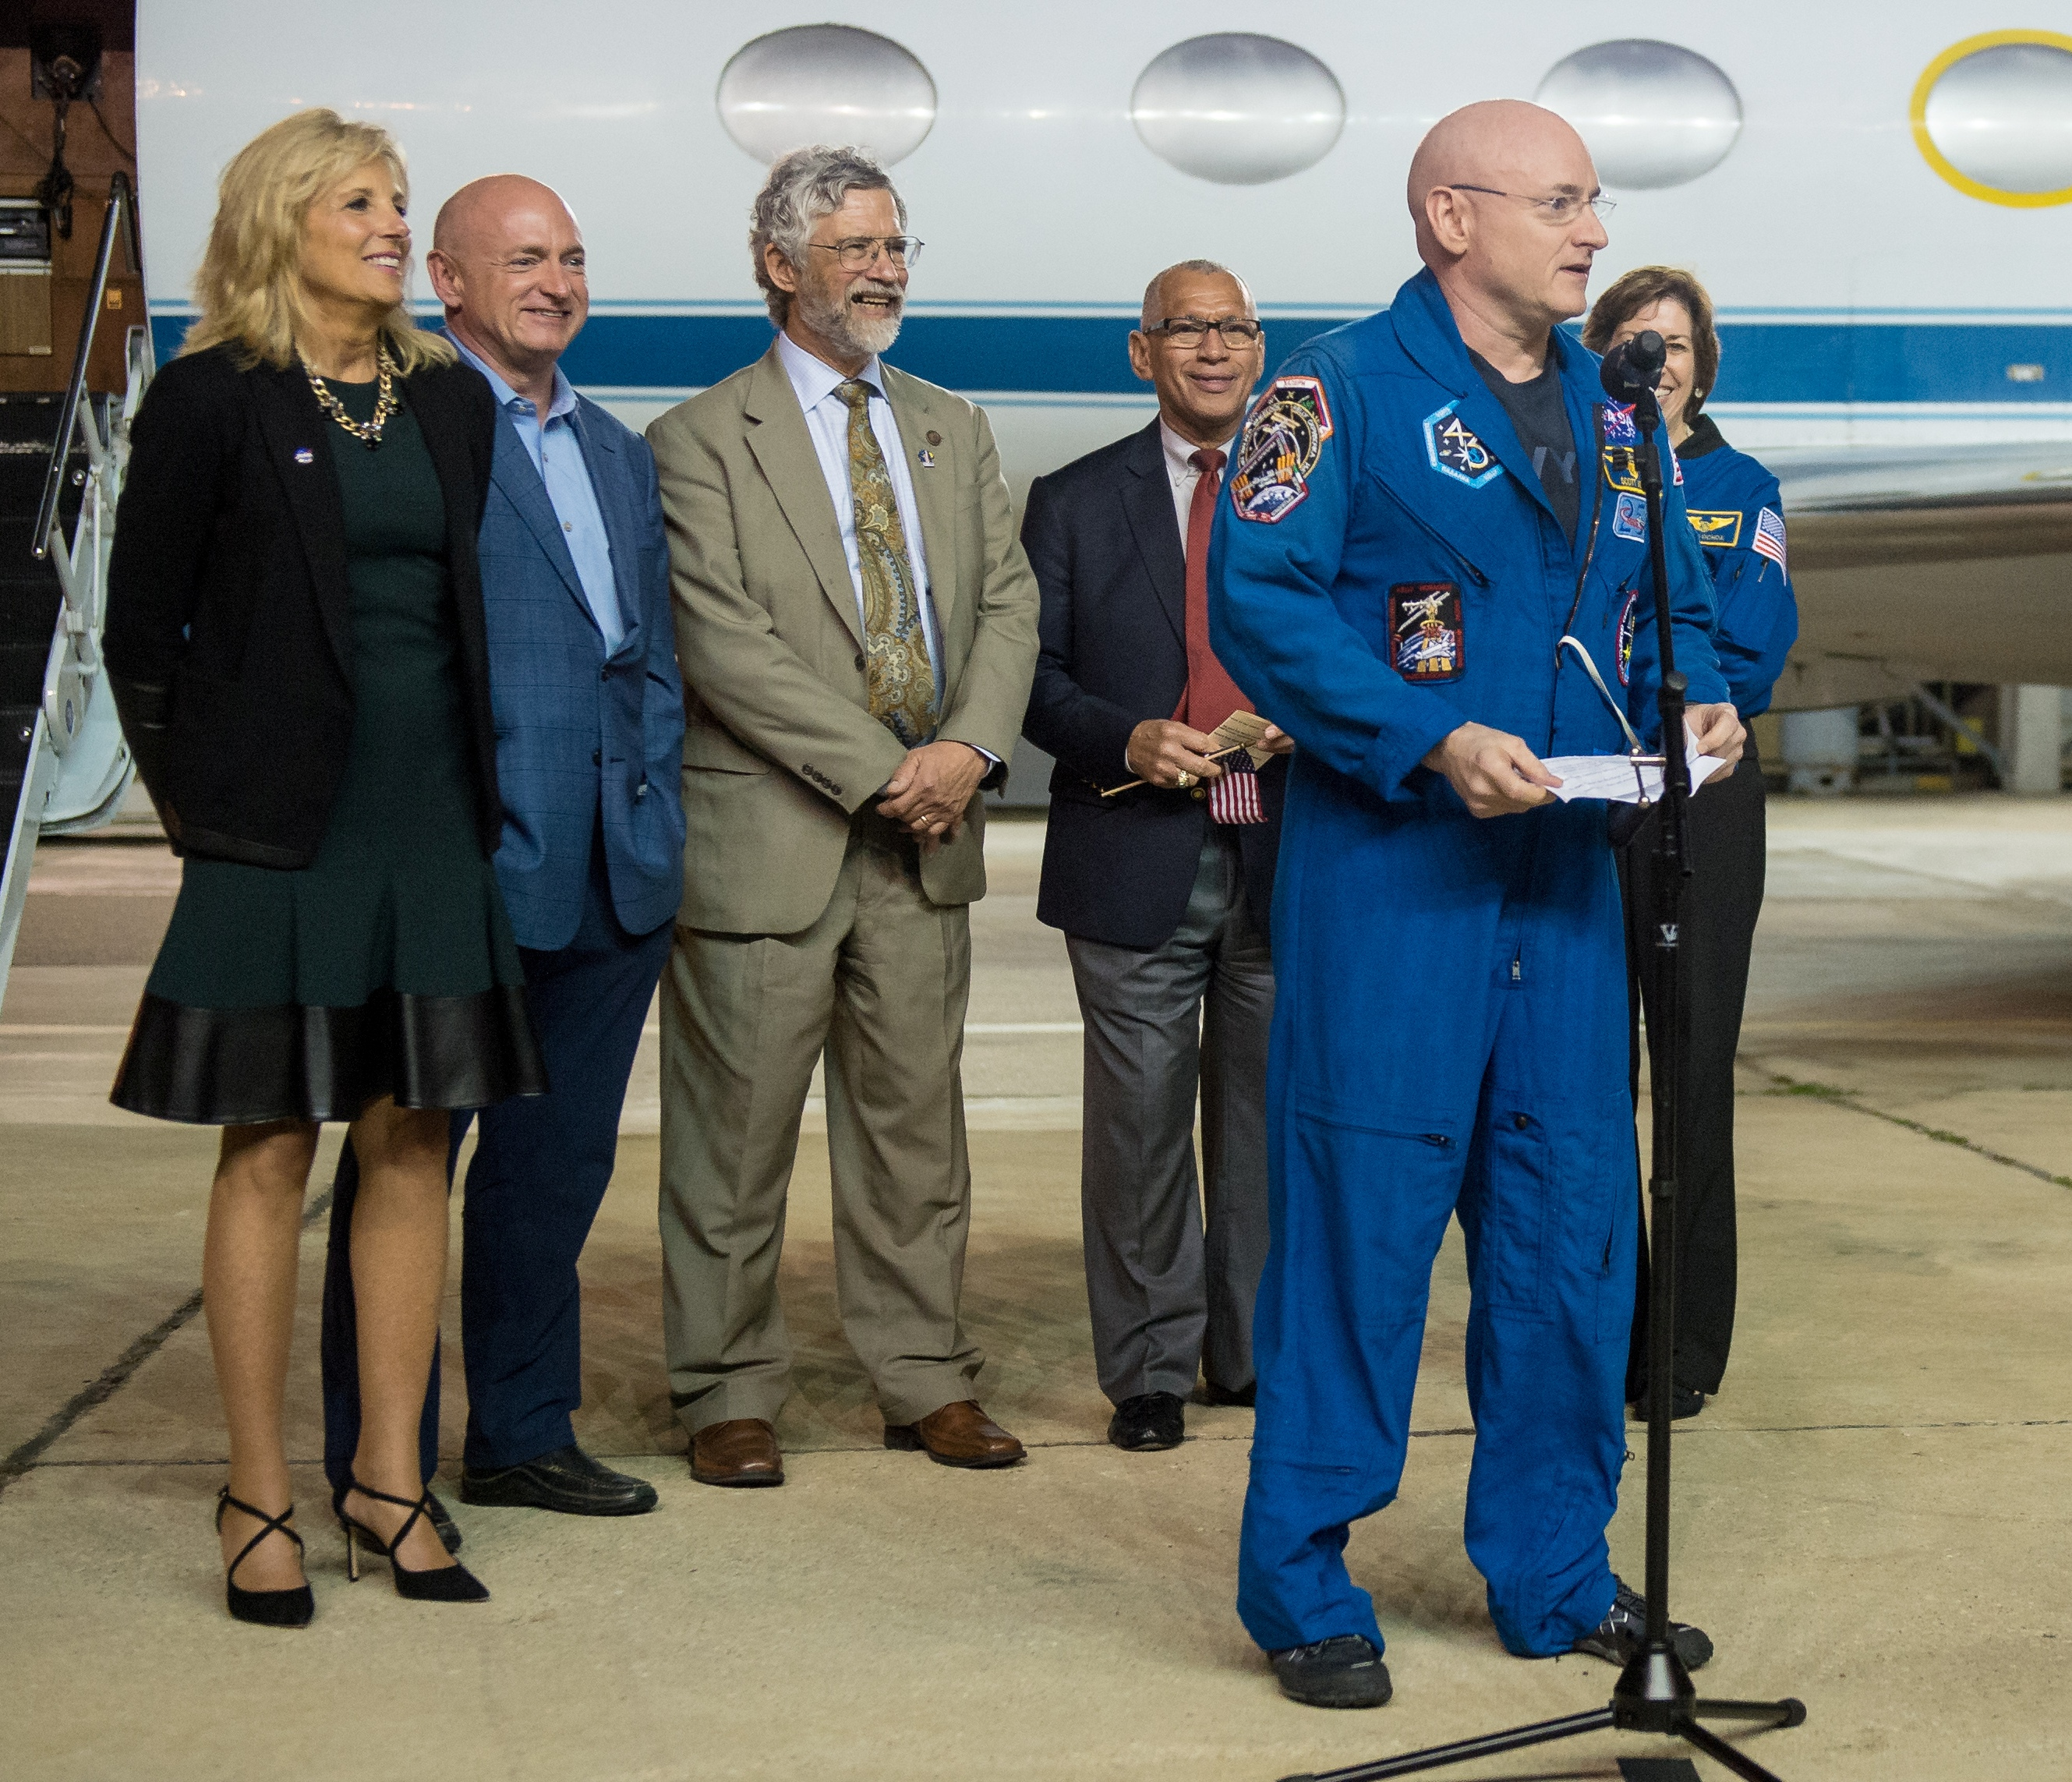 Astronaut Scott Kelly addresses the crowd that came to greet him at Ellington Field Wednesday, March 2, after spending a year in space. Helping welcome him back to Houston following his return to Earth were, from left, Dr. Jill Biden, wife of Vice President Joe Biden; his twin brother, retired astronaut Mark Kelly; Dr. John Holdren, director of the White House Office of Science and Technology; NASA Administrator Charles Bolden; and Johnson Space Center Director Dr. Ellen Ochoa.